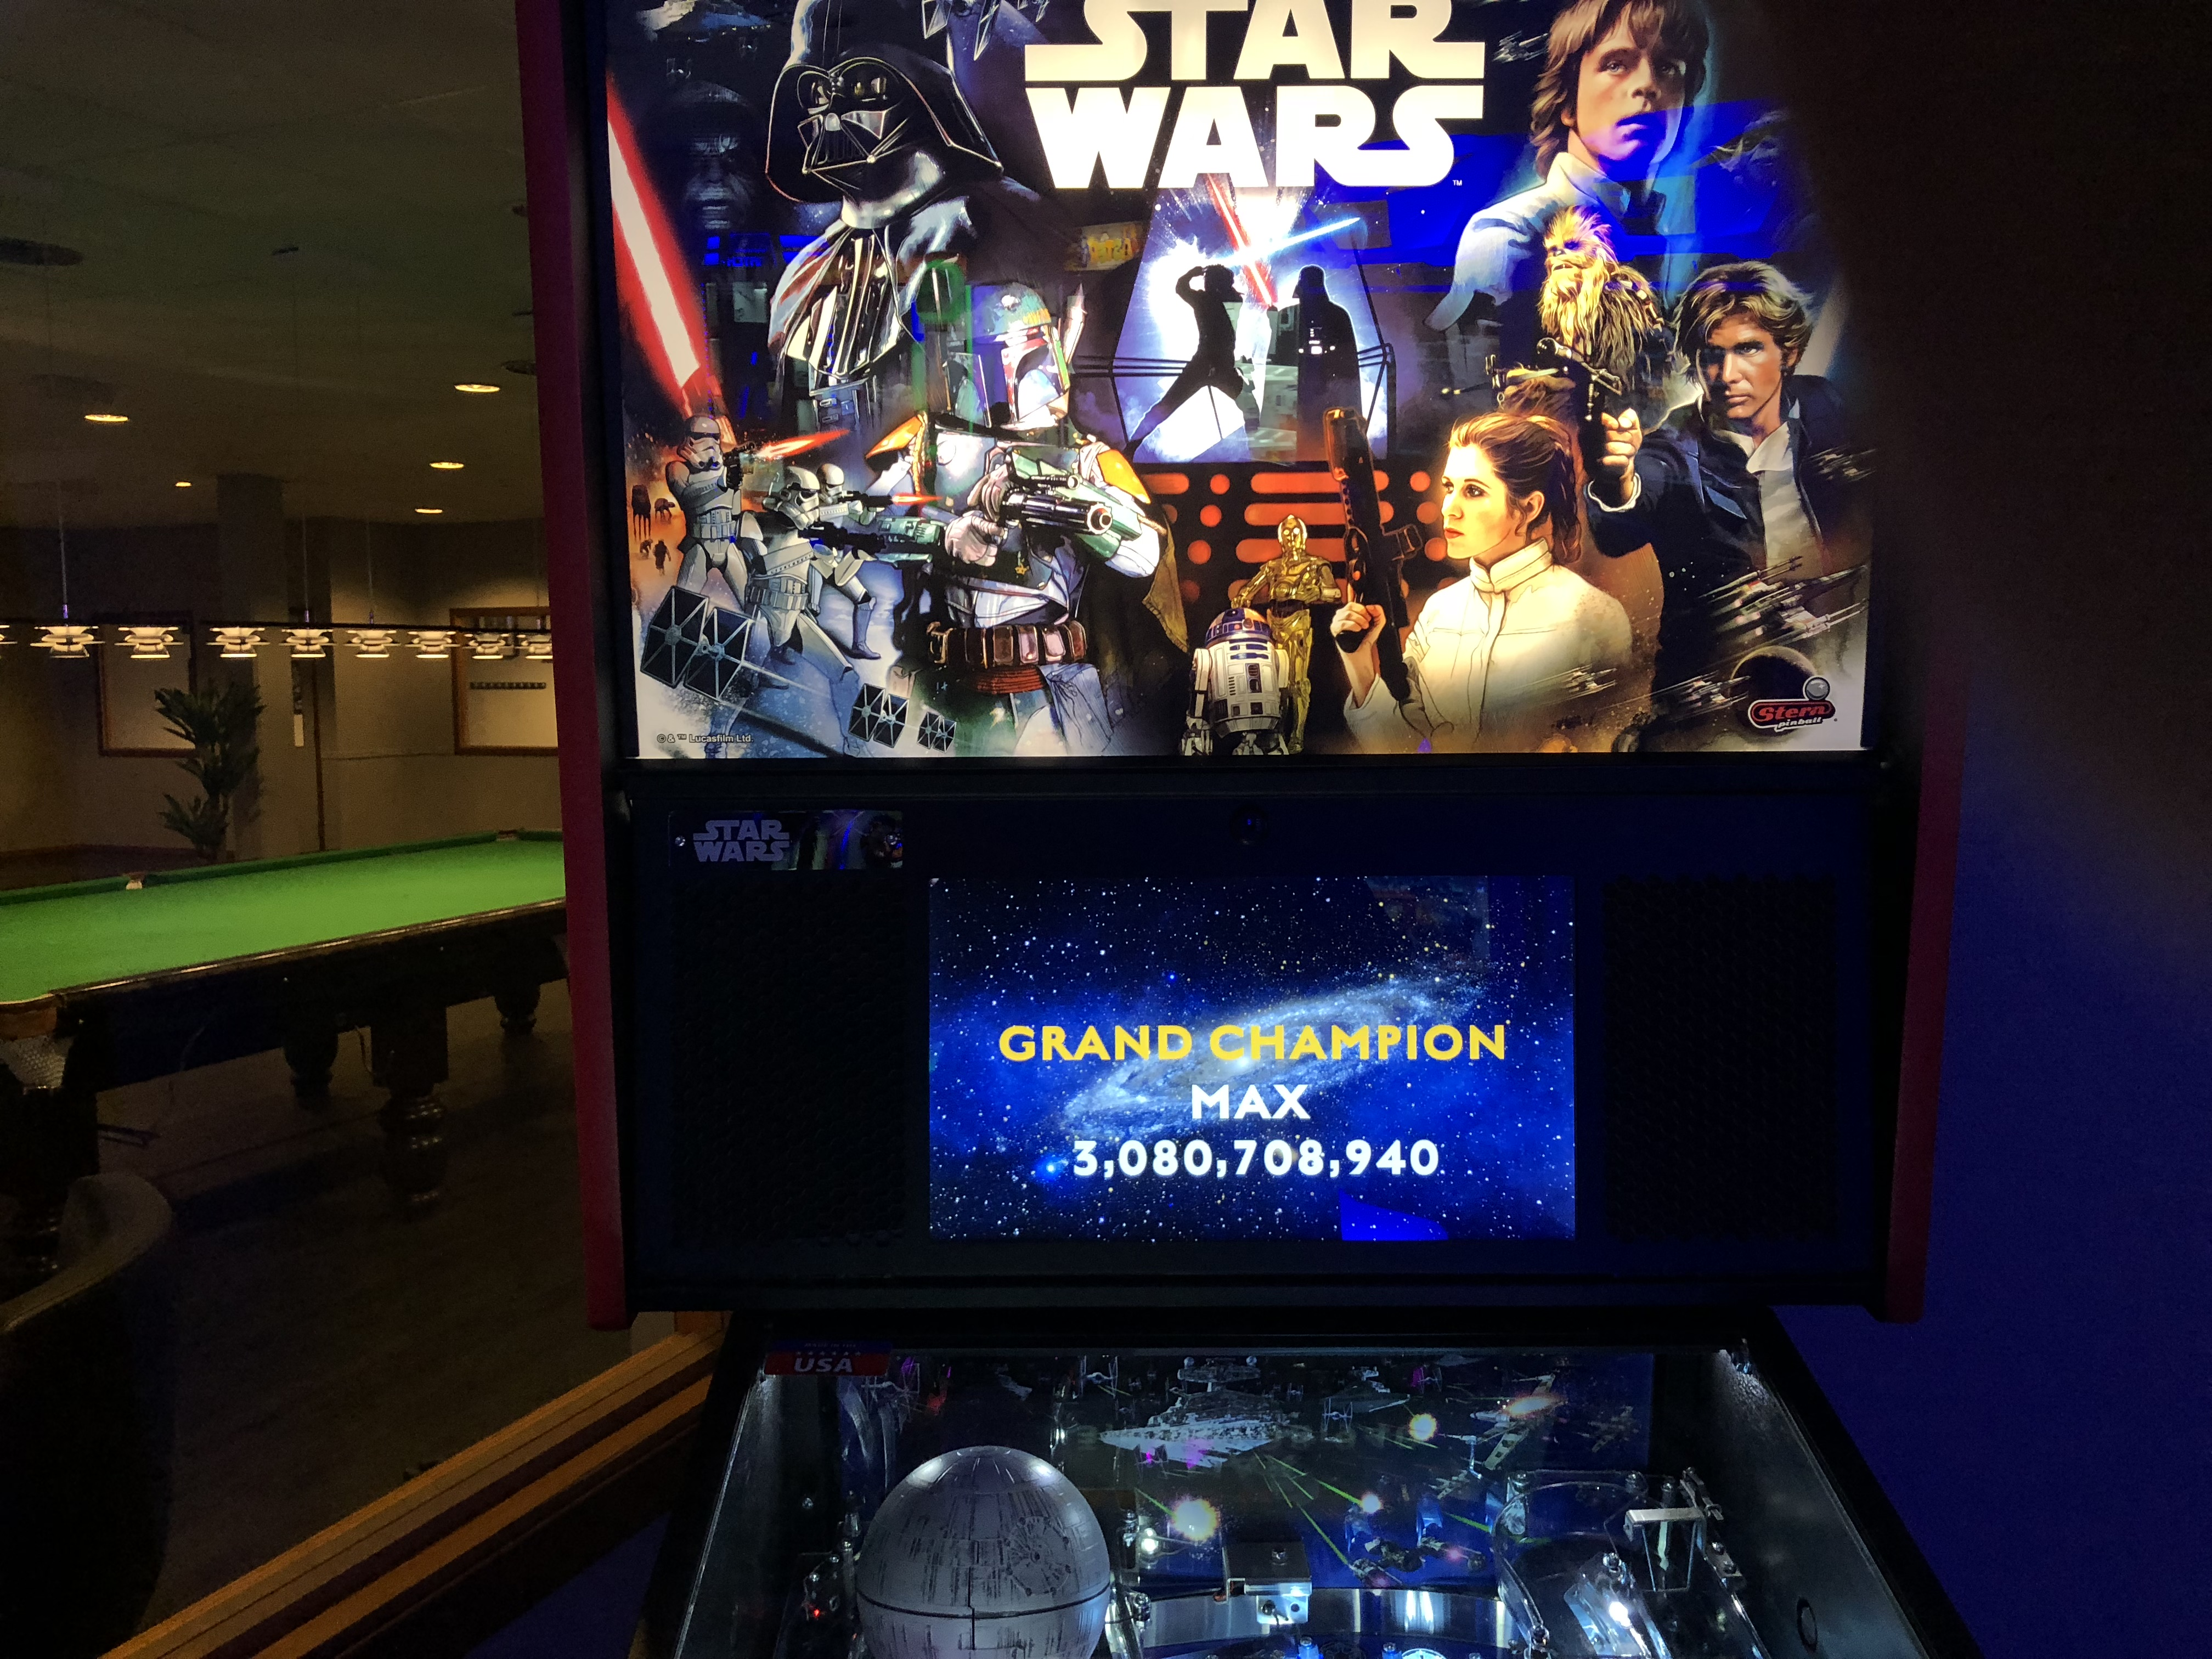 Maxwel: Star Wars [Stern] [Pro] (Pinball: 3 Balls) 3,080,708,940 points on 2017-12-13 16:38:18